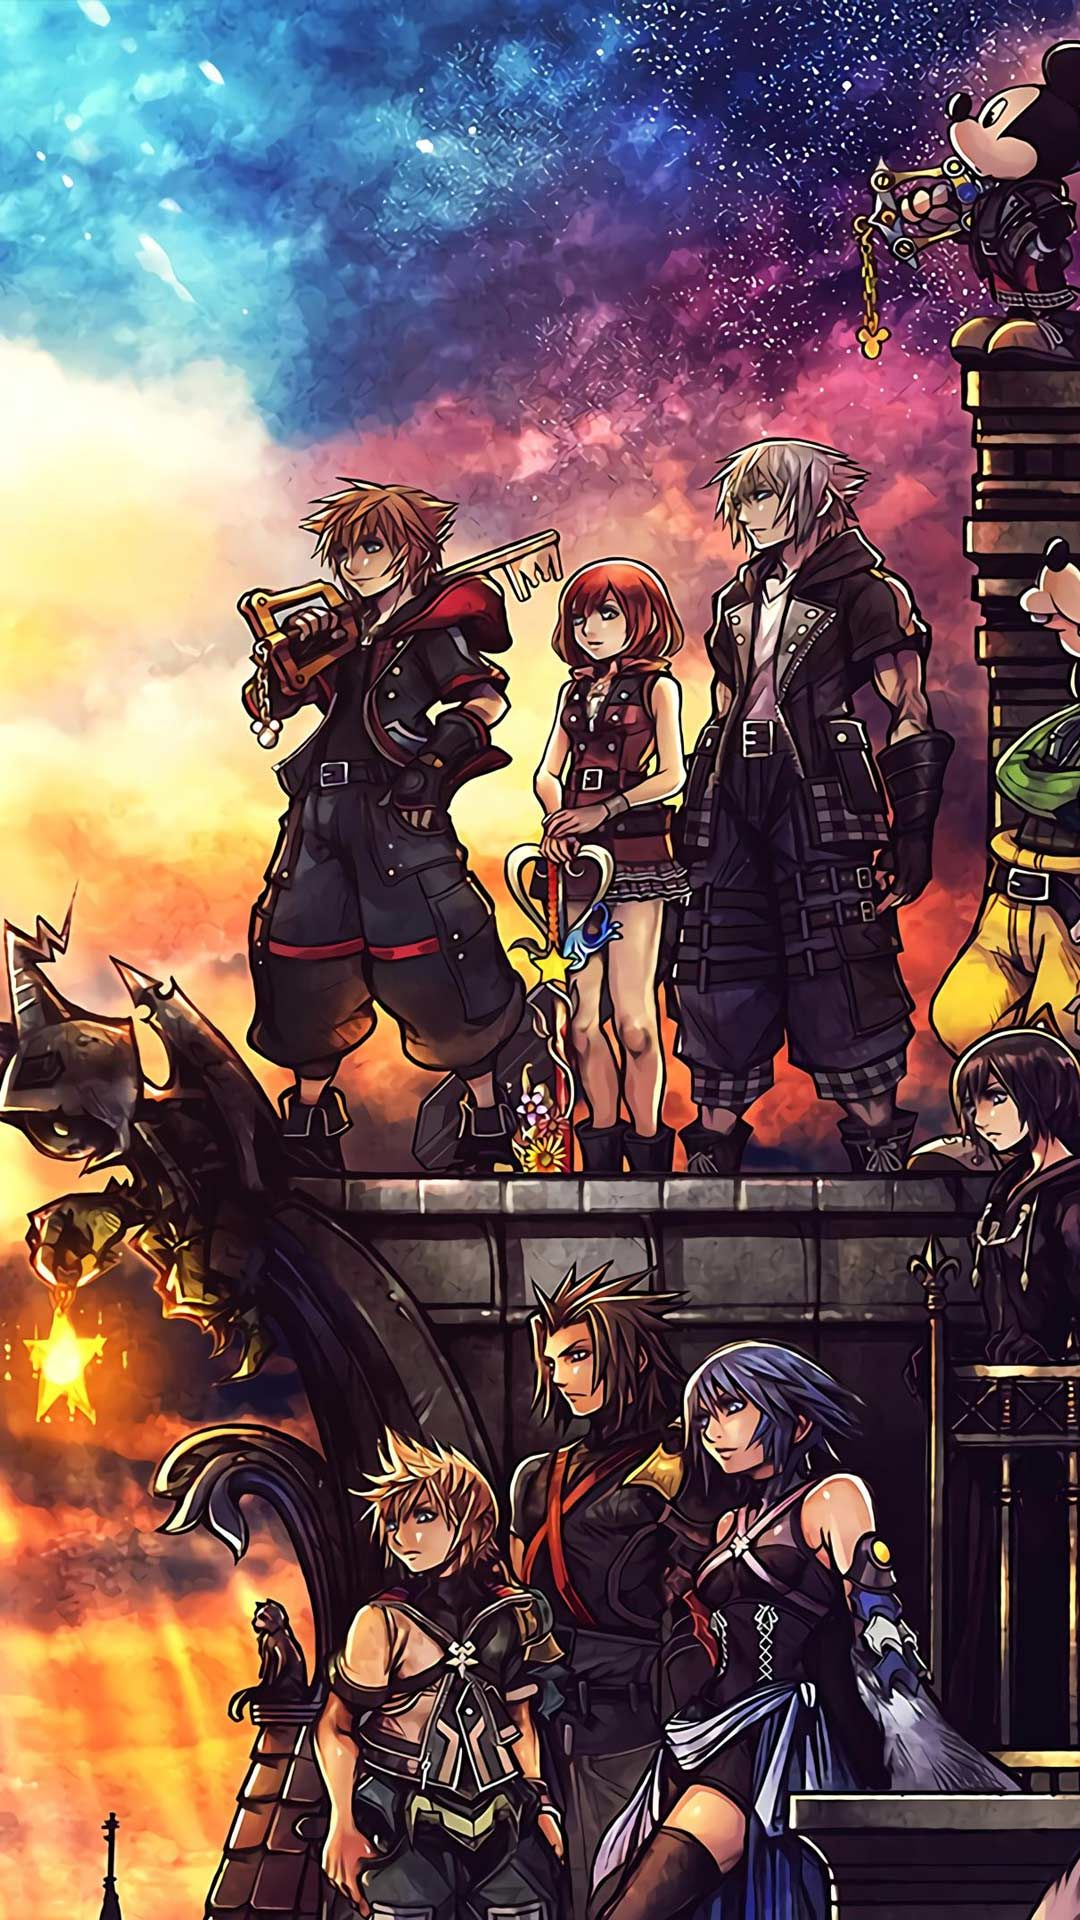 20 Kingdom Hearts 3 Phone Wallpaper Hd Backgrounds Iphone Android Free Characters Art Download In 2020 Downloadable Art Phone Wallpaper Android Wallpaper